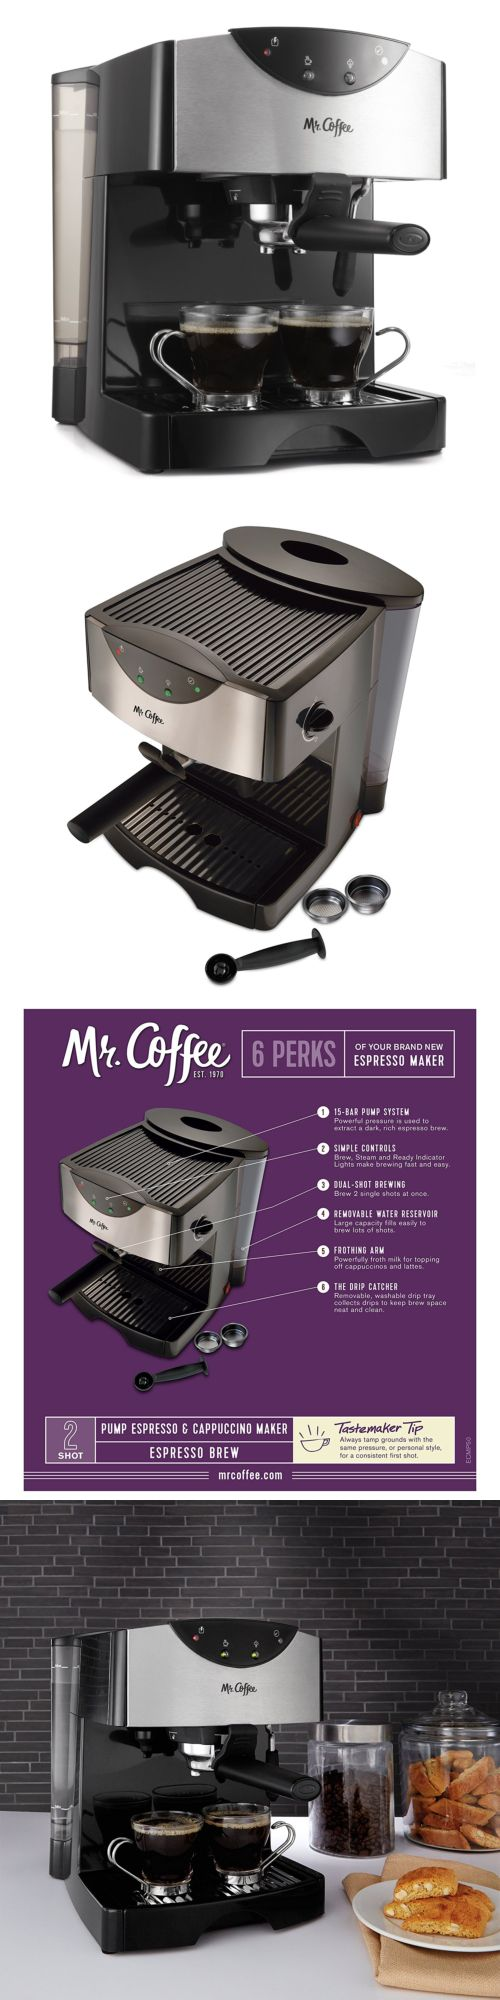 Small Kitchen Appliances: New Mr Coffee Steam Espresso Machine Hot Cappuccino Latte Froth Maker Cafe -> BUY IT NOW ONLY: $75 on eBay!